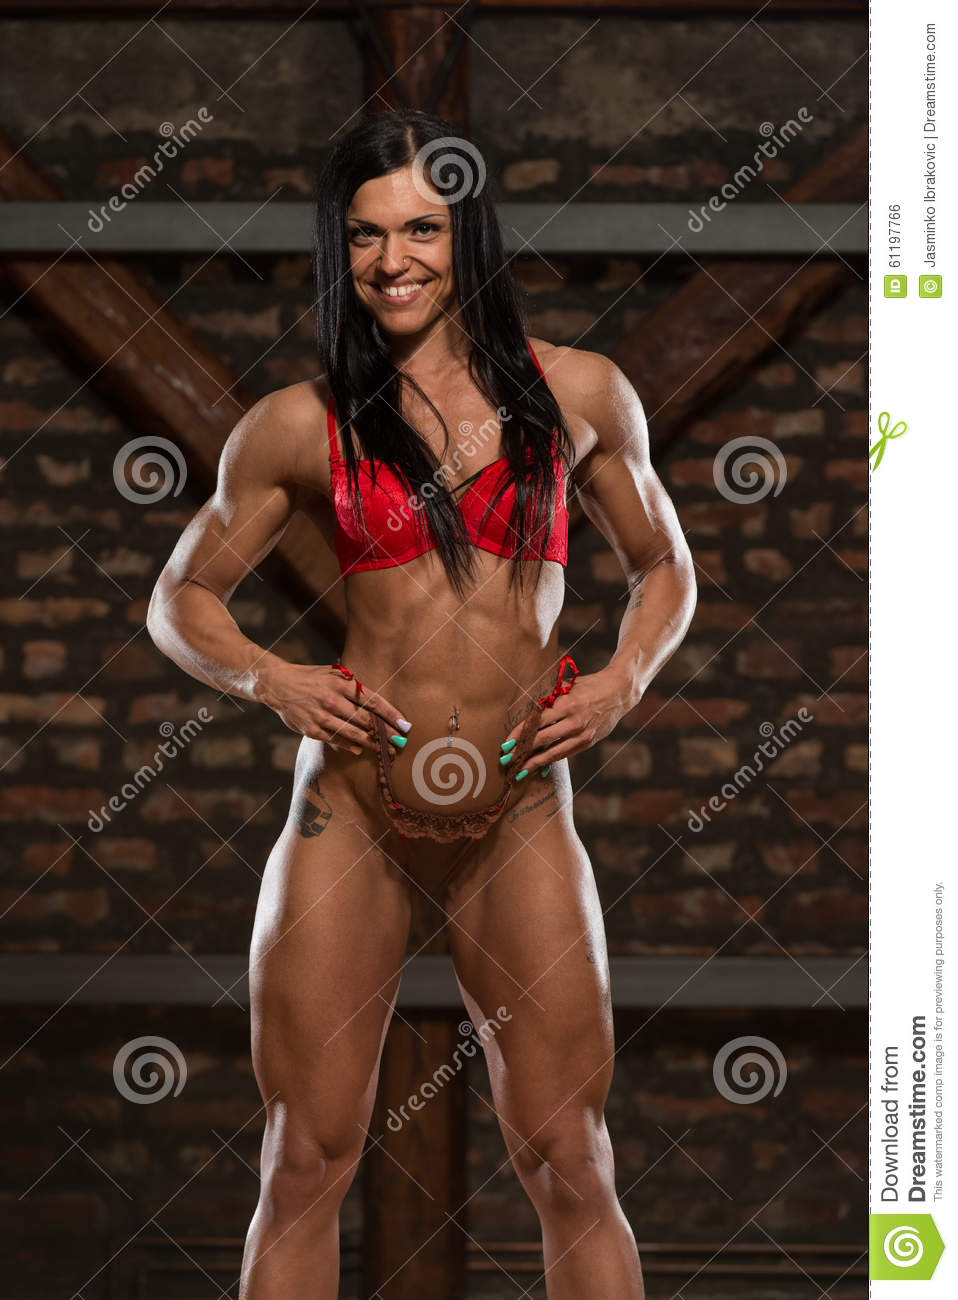 Consider, that body building woman sexy